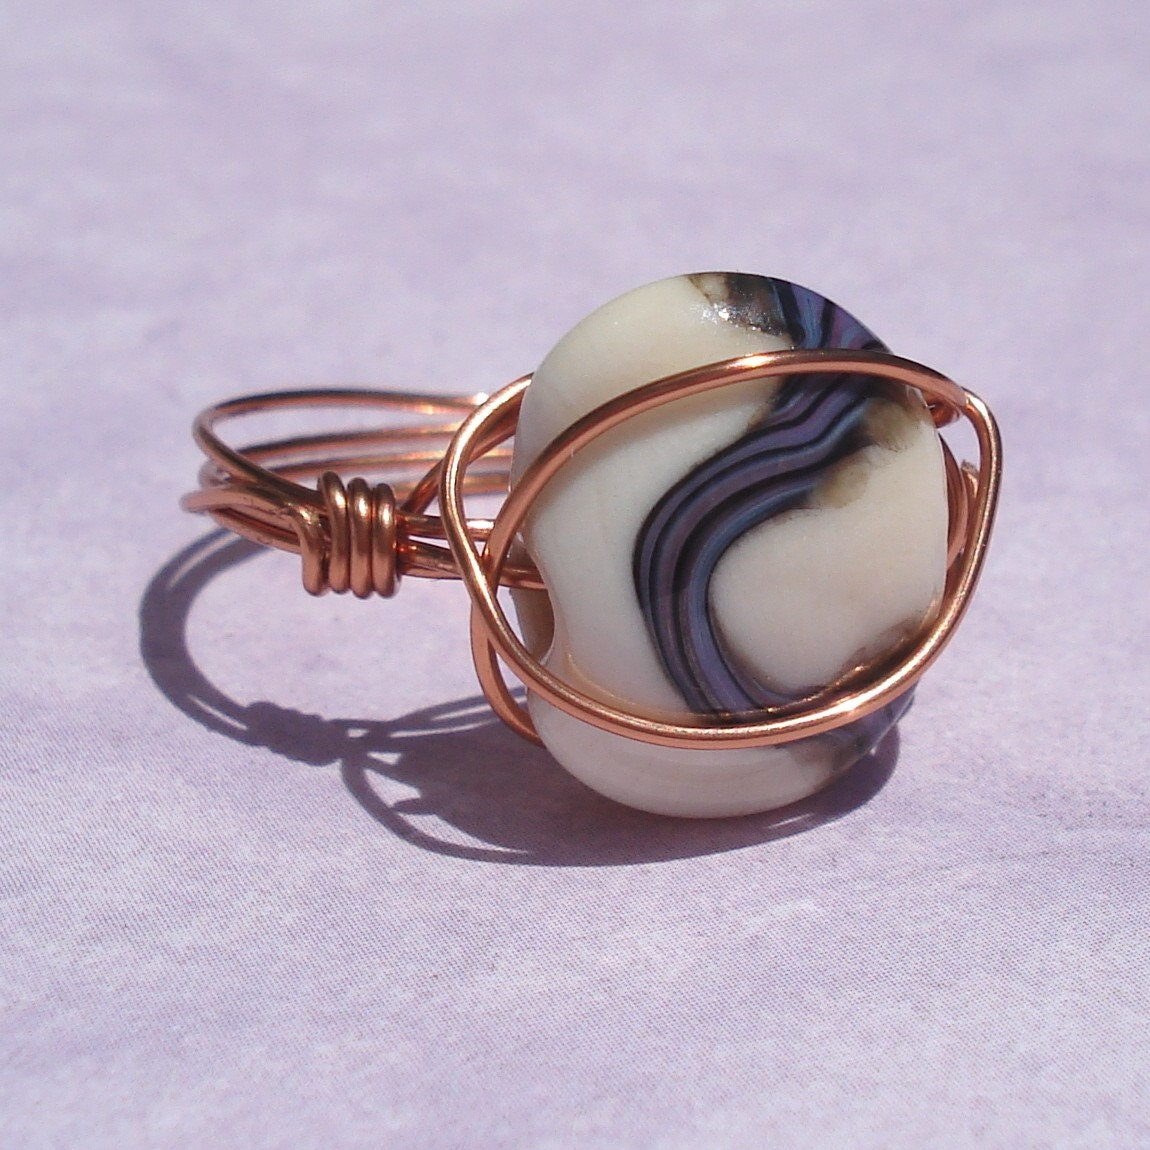 wire wrapped copper ring with artisan lampwork glass bead